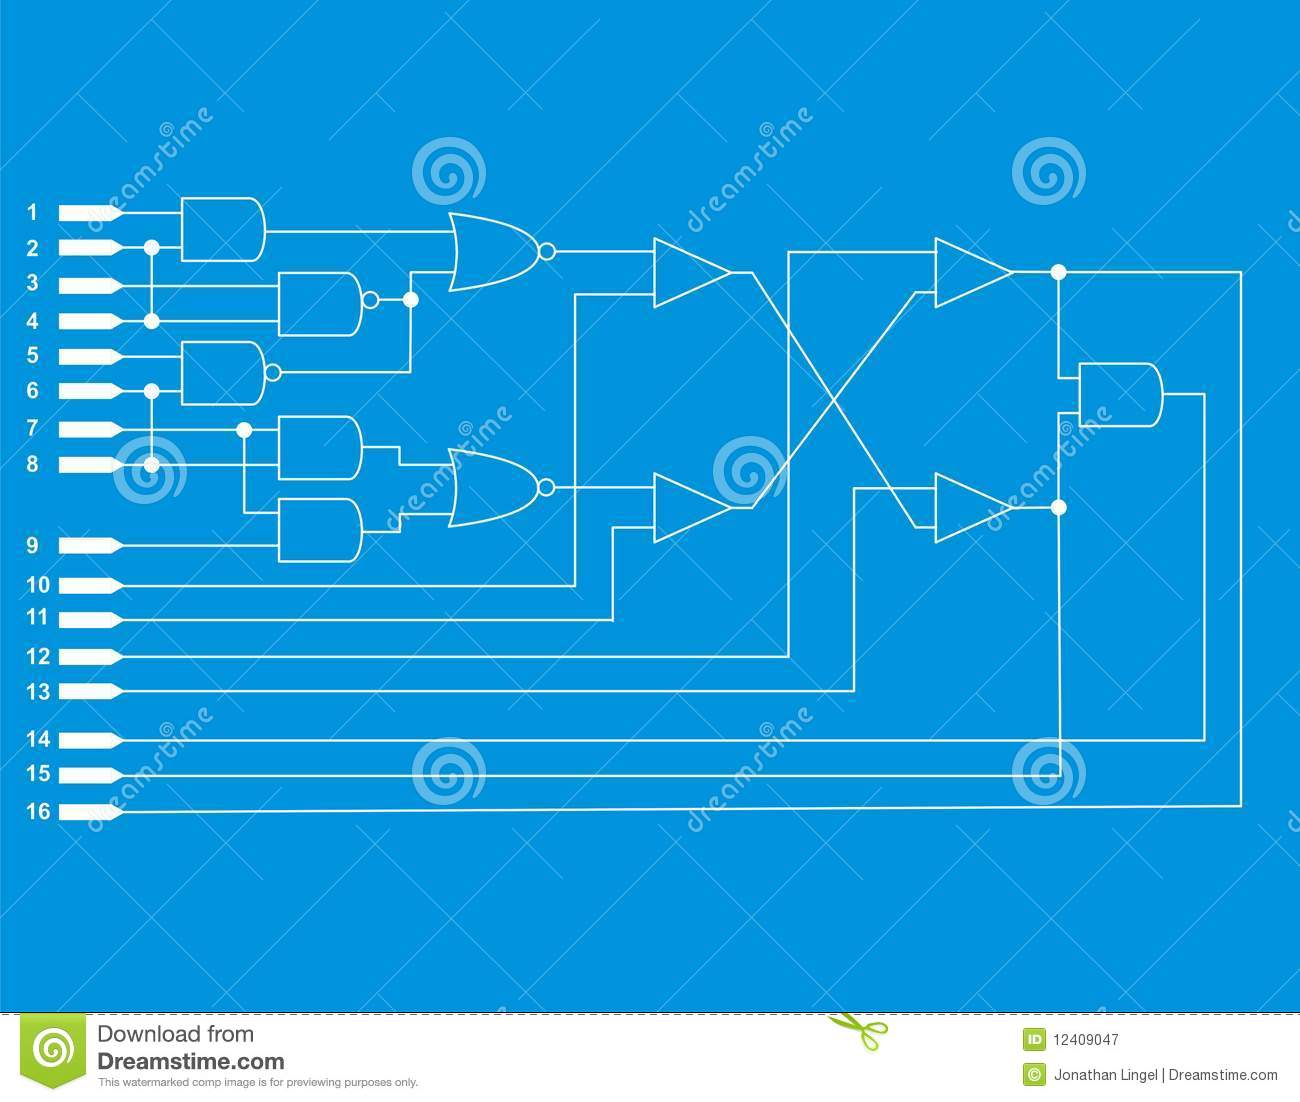 Logic diagram stock illustration. Illustration of diagram - 12409047